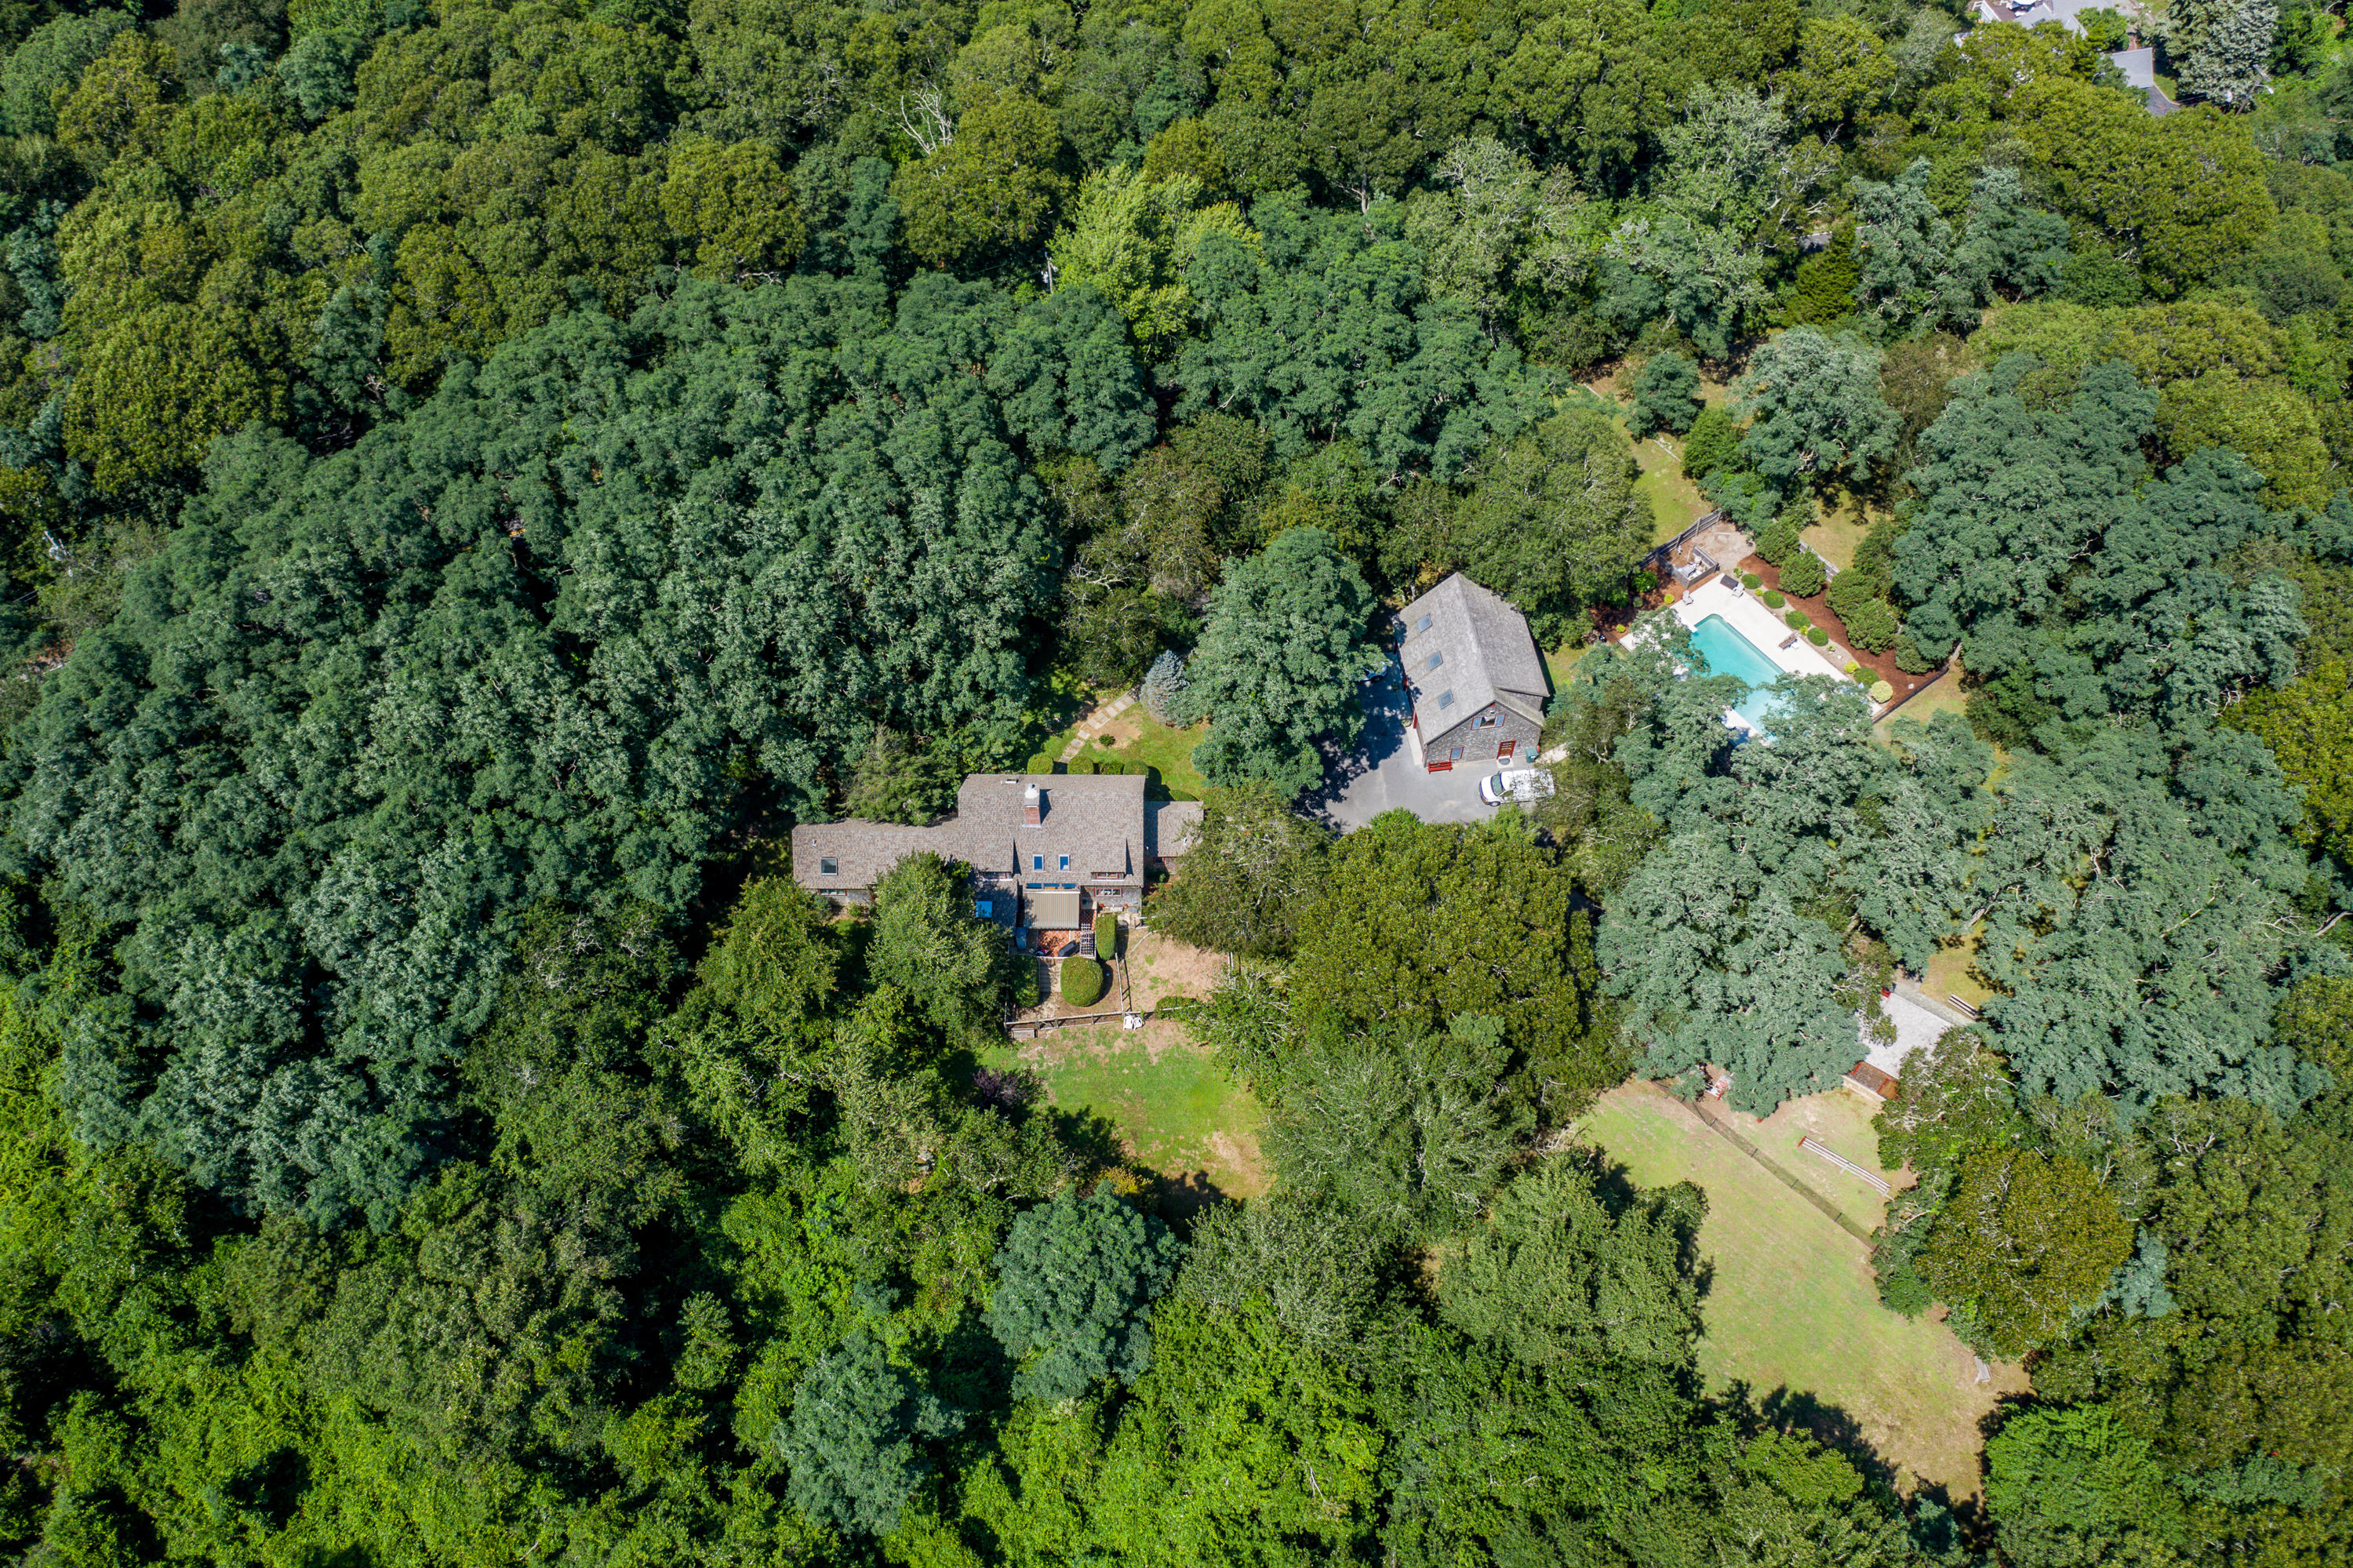 218 Willow Street, West Barnstable MA, 02668 details